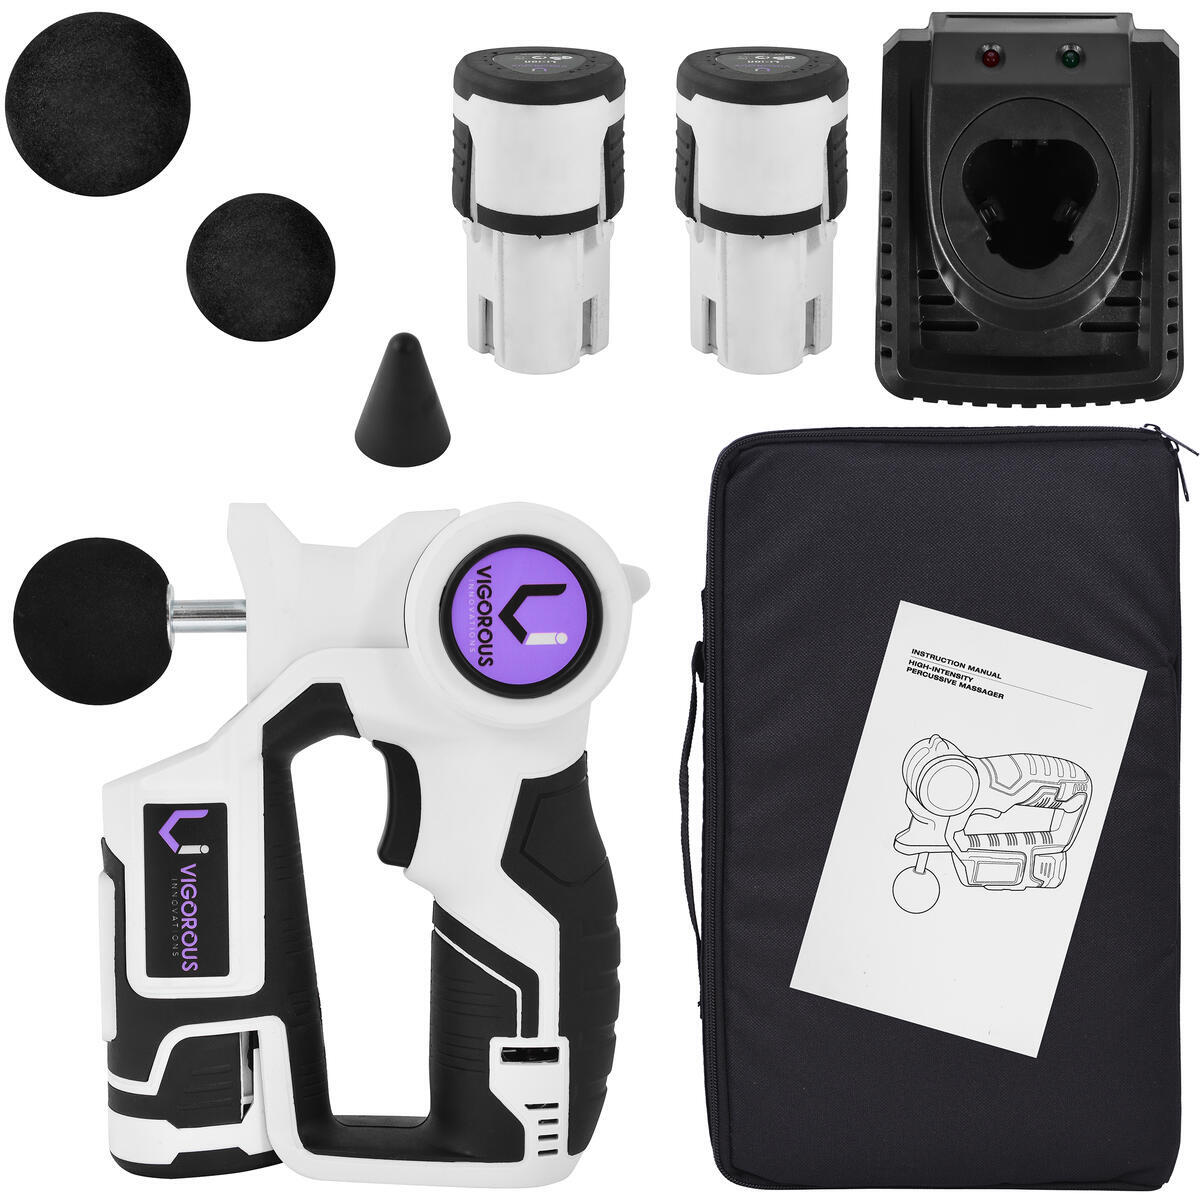 VI Premium Percussion Massager with 2 Batteries, Case, and 3 Heads- Loud but Powerful Cordless Full Body Relief